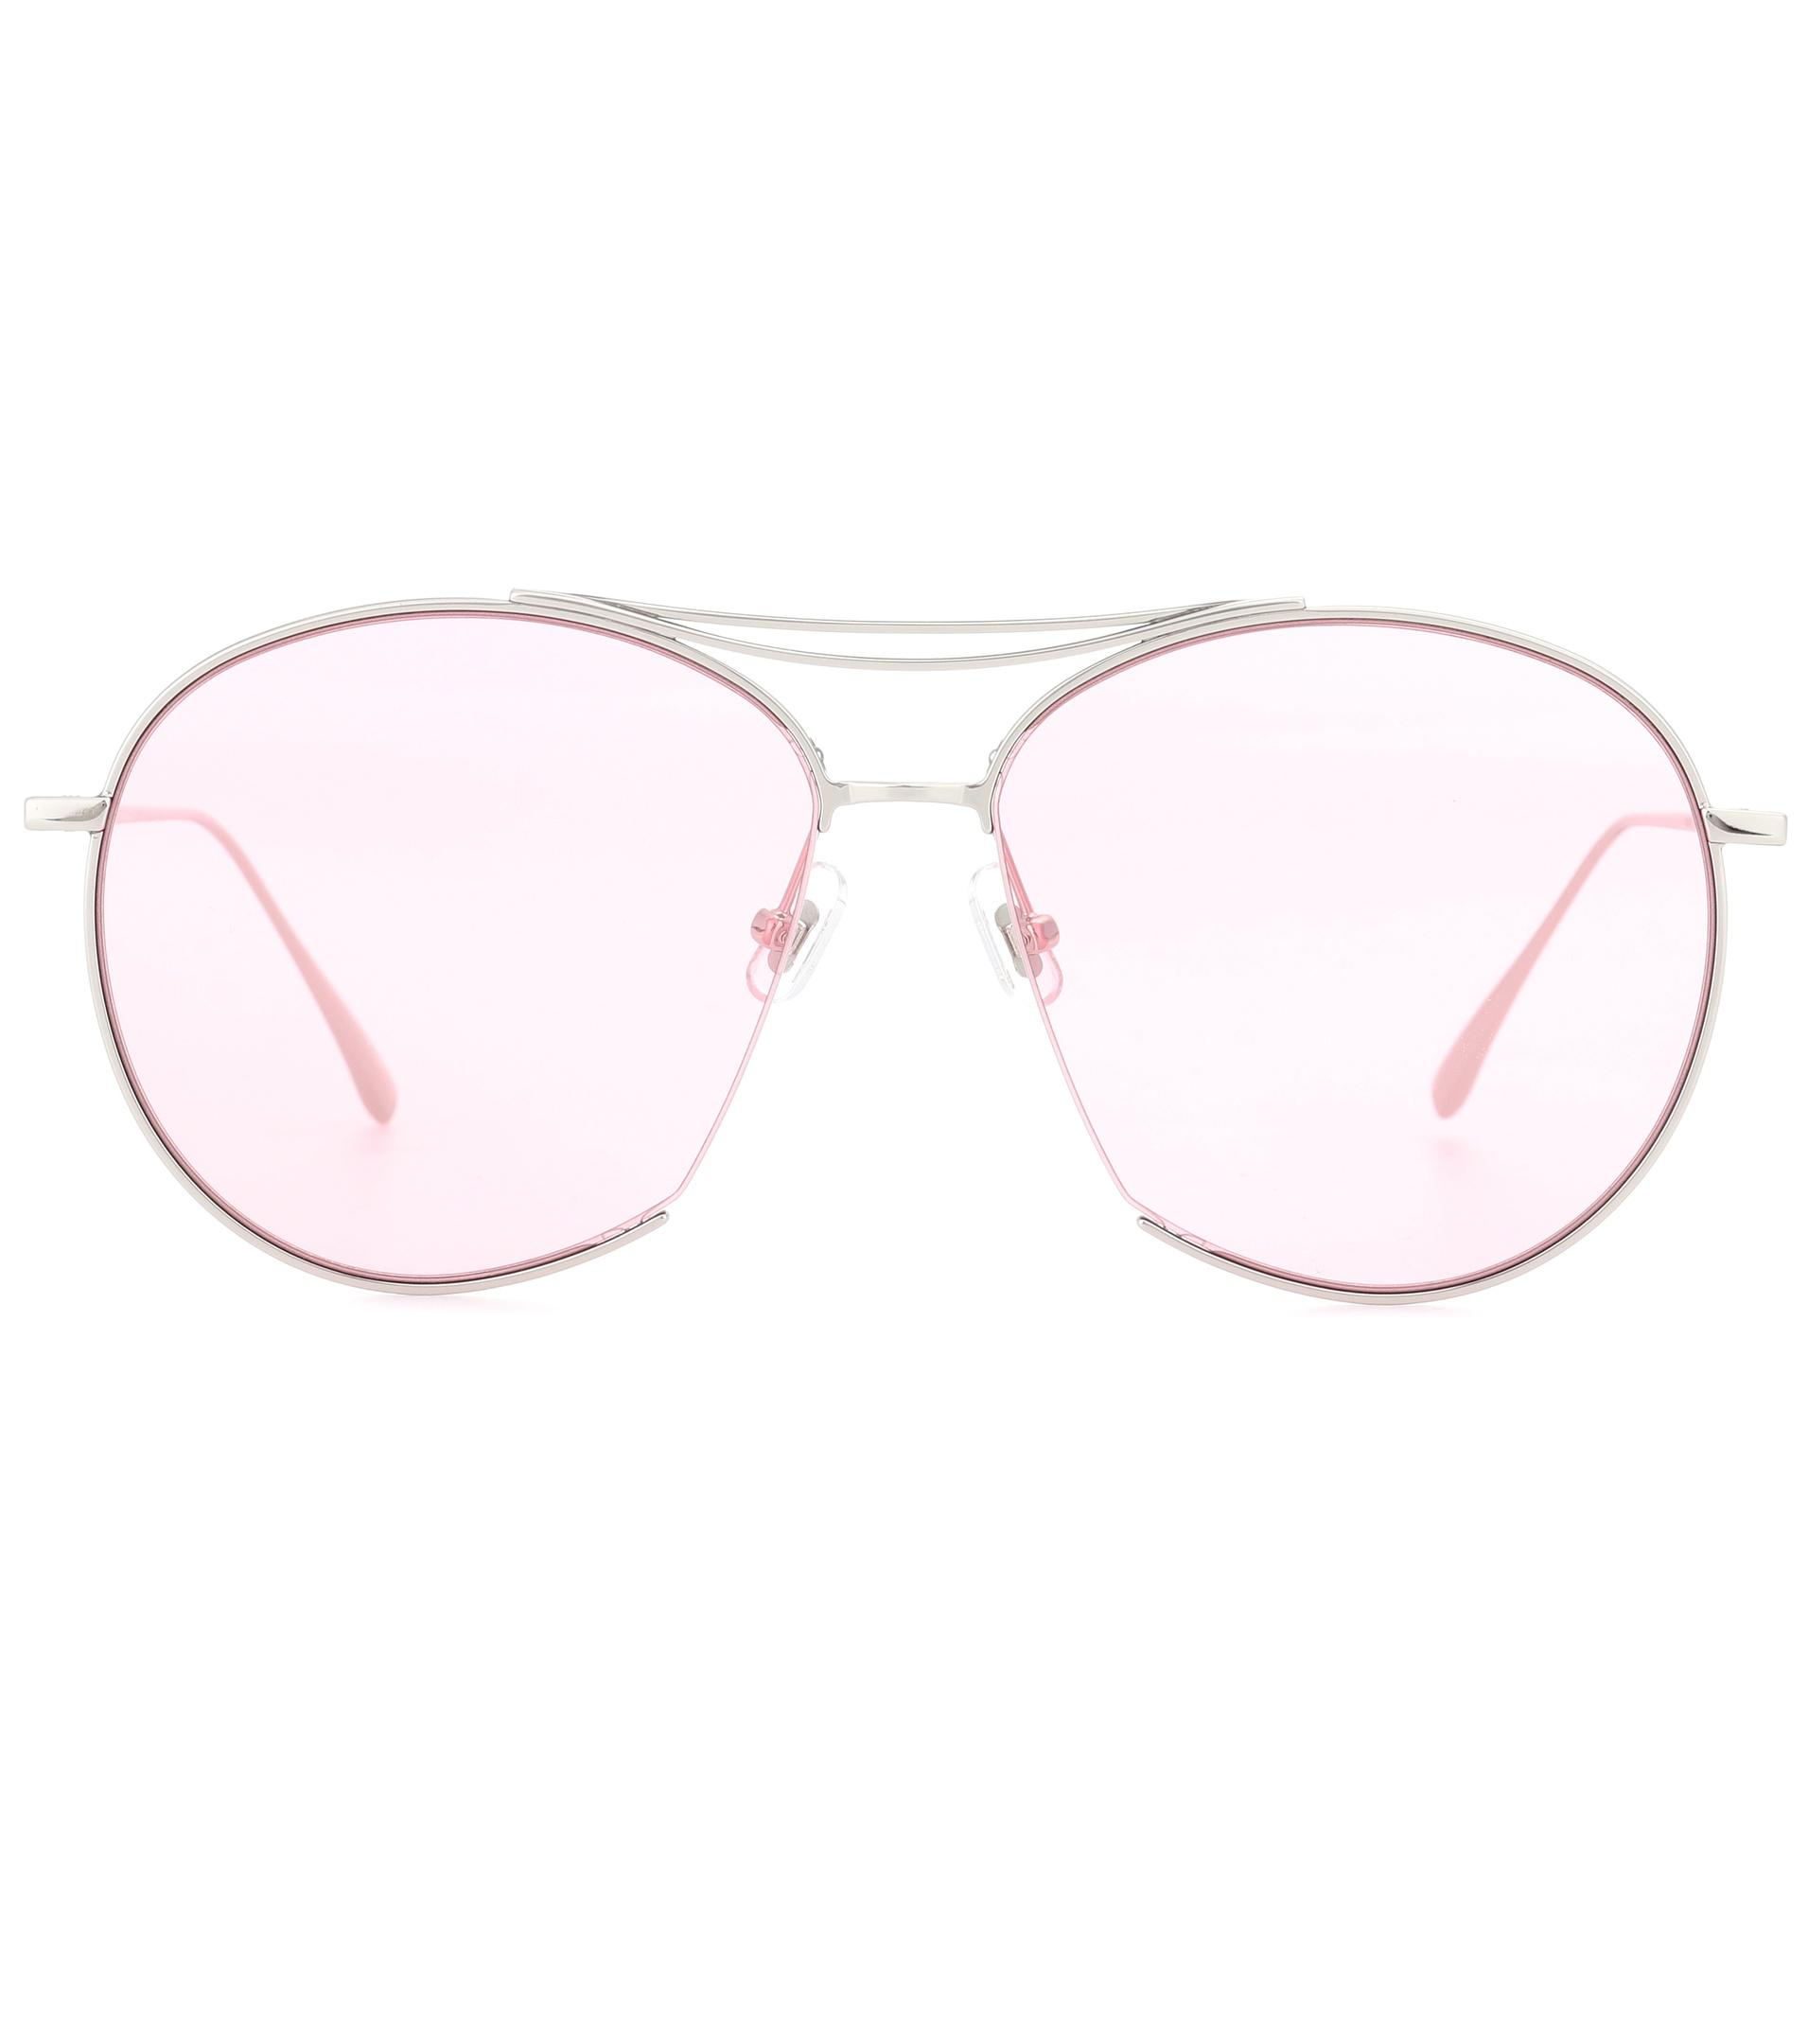 f0e0d73a9d7 Gentle Monster Jumping Jack Aviator Sunglasses in Pink - Lyst